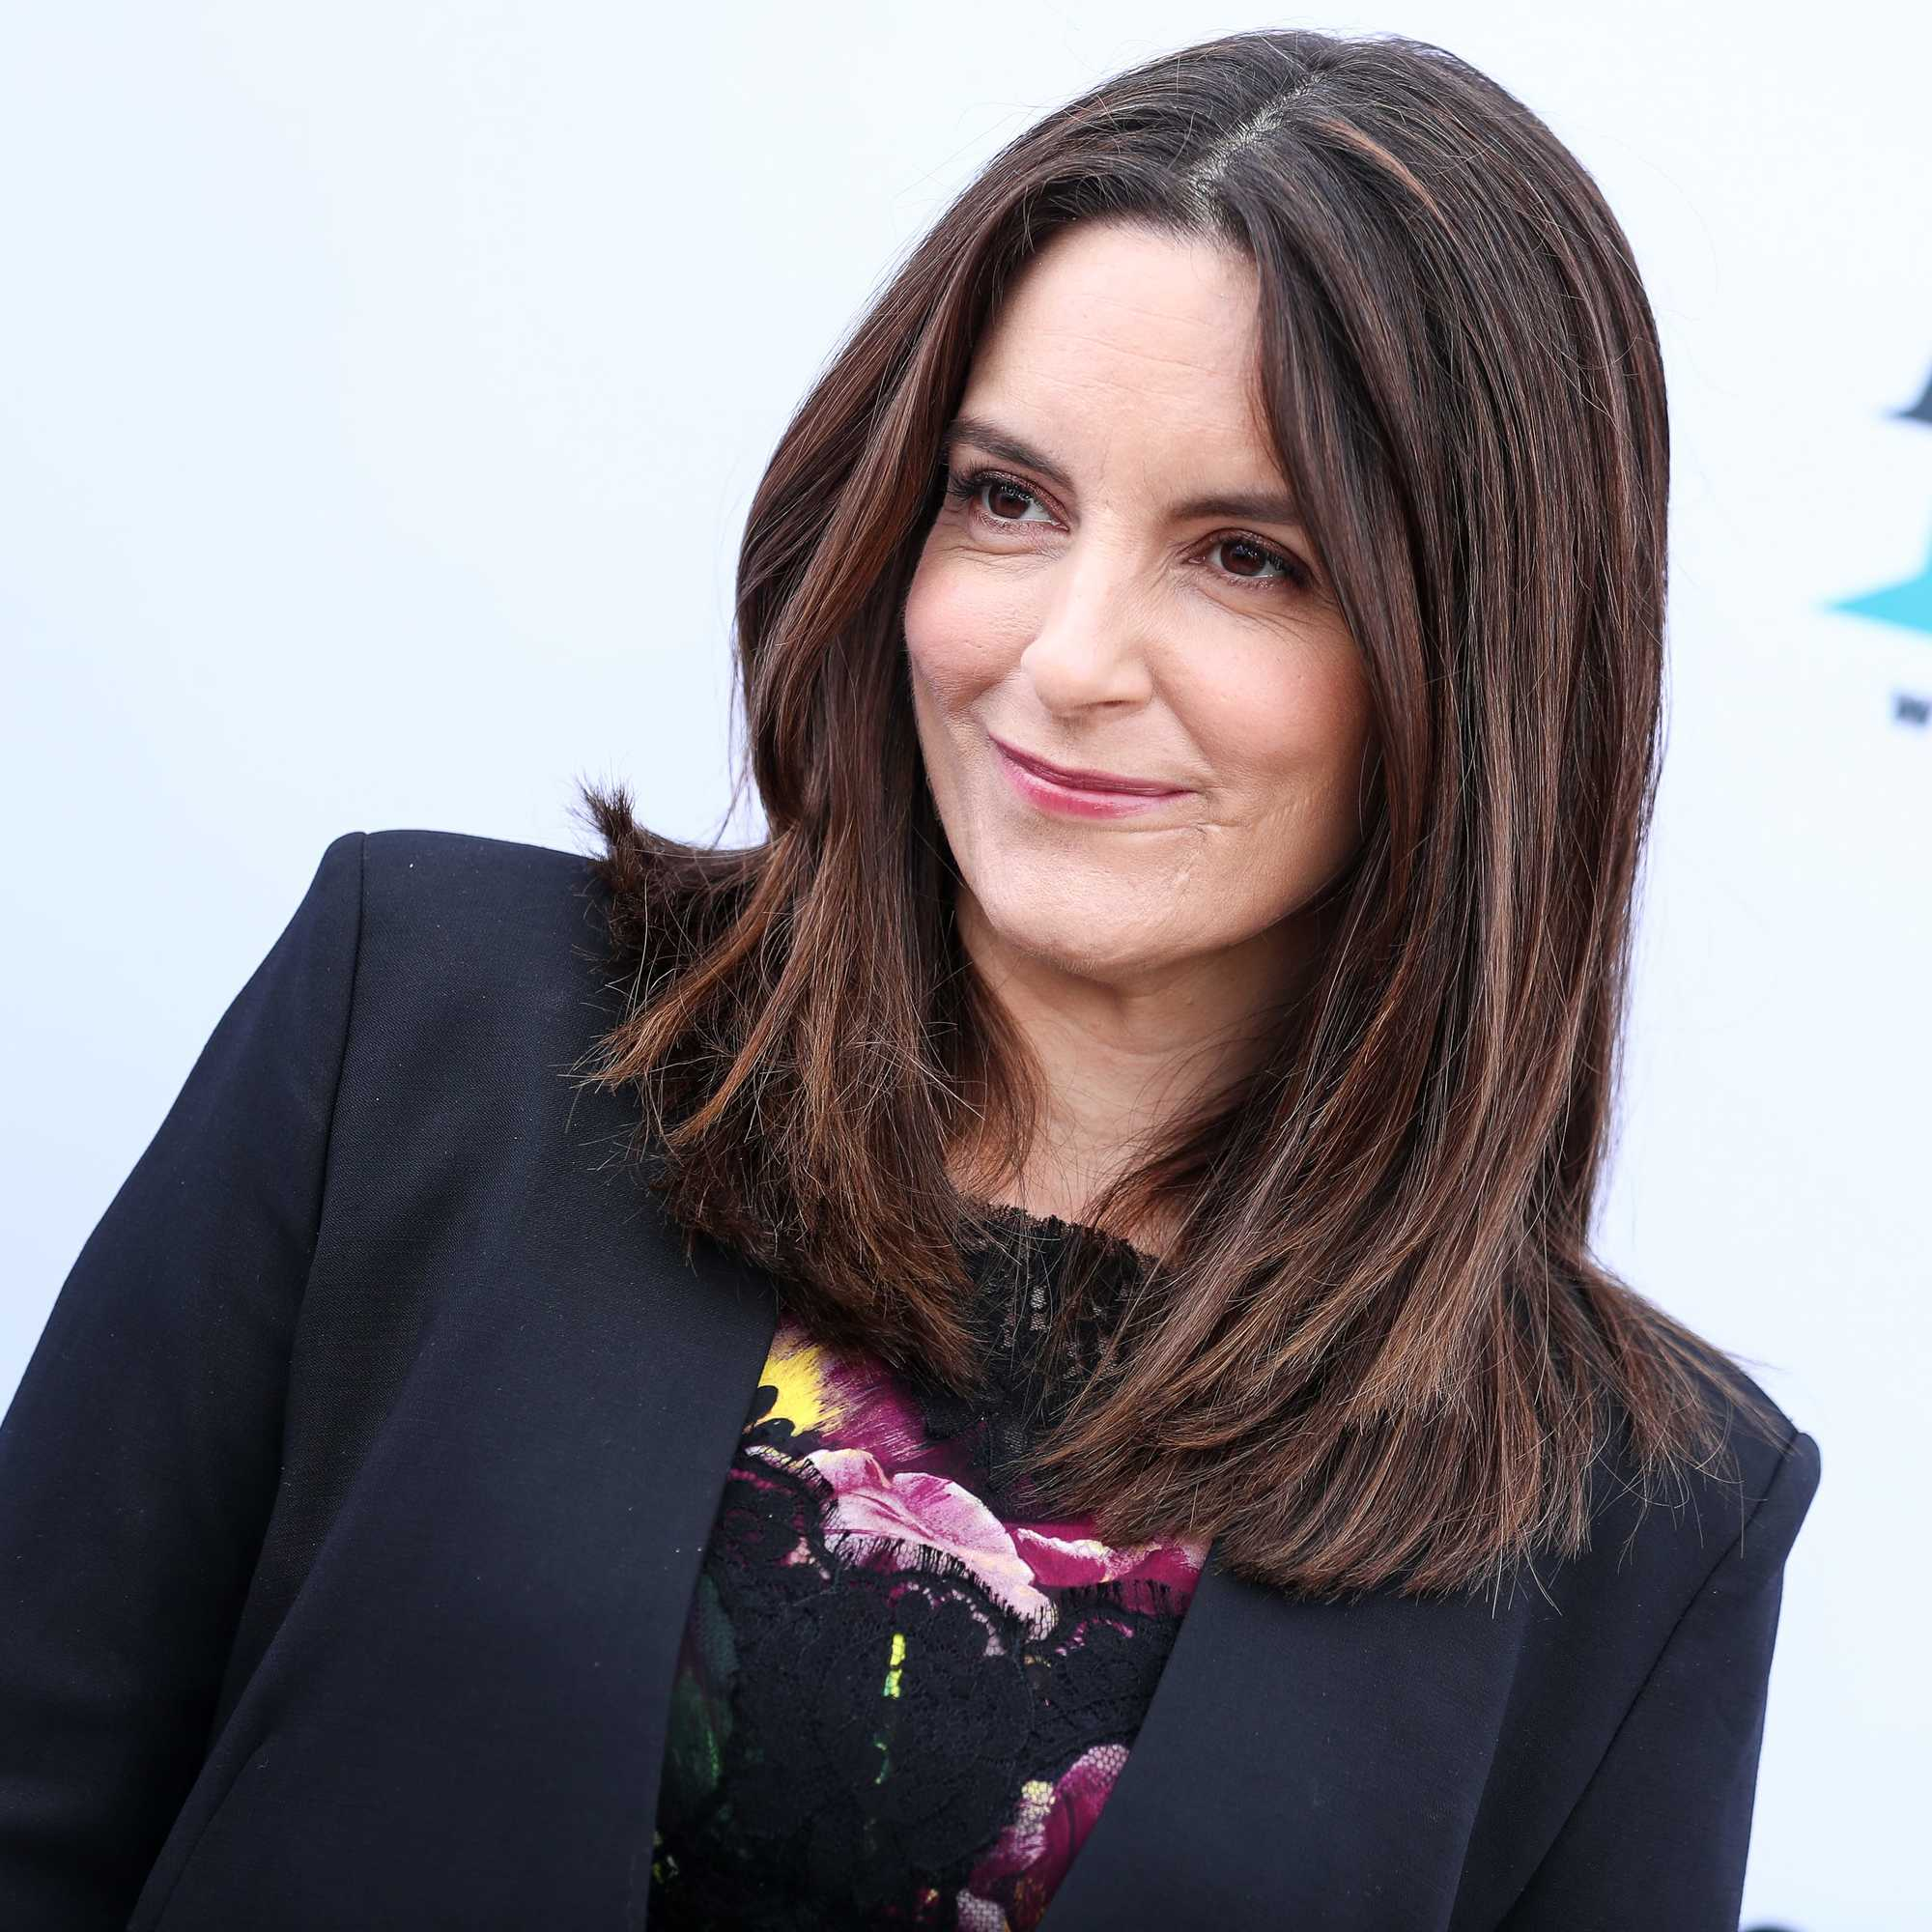 Shoulder length layered hair: comedy actress tina fey with shoulder length brown hair and blunt layers